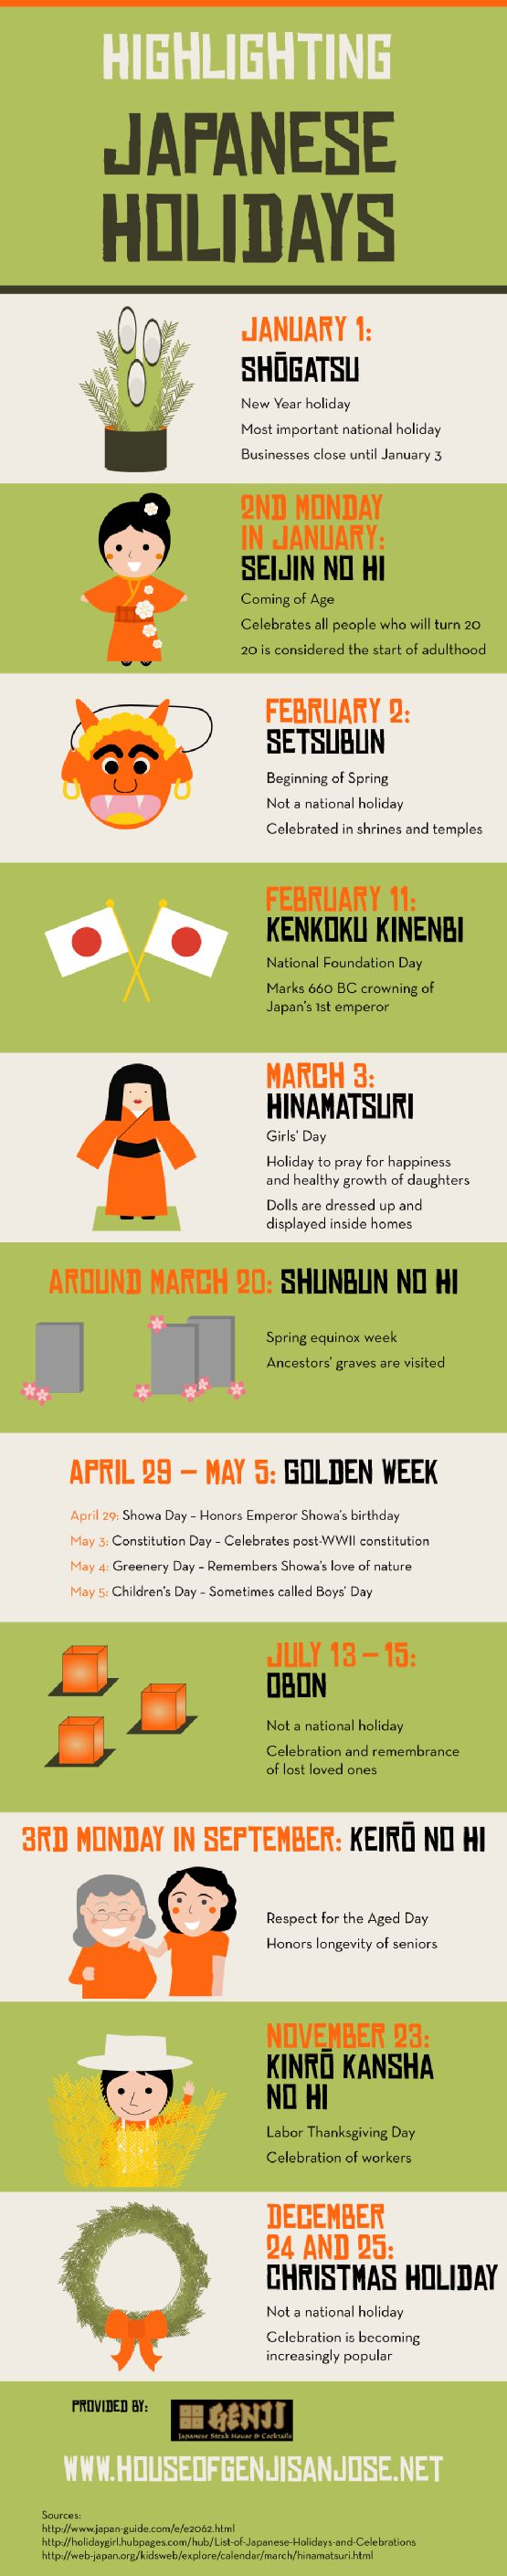 Highlighting Japanese Holidays - Infographic || by House of Genji, San Jose, California, USA